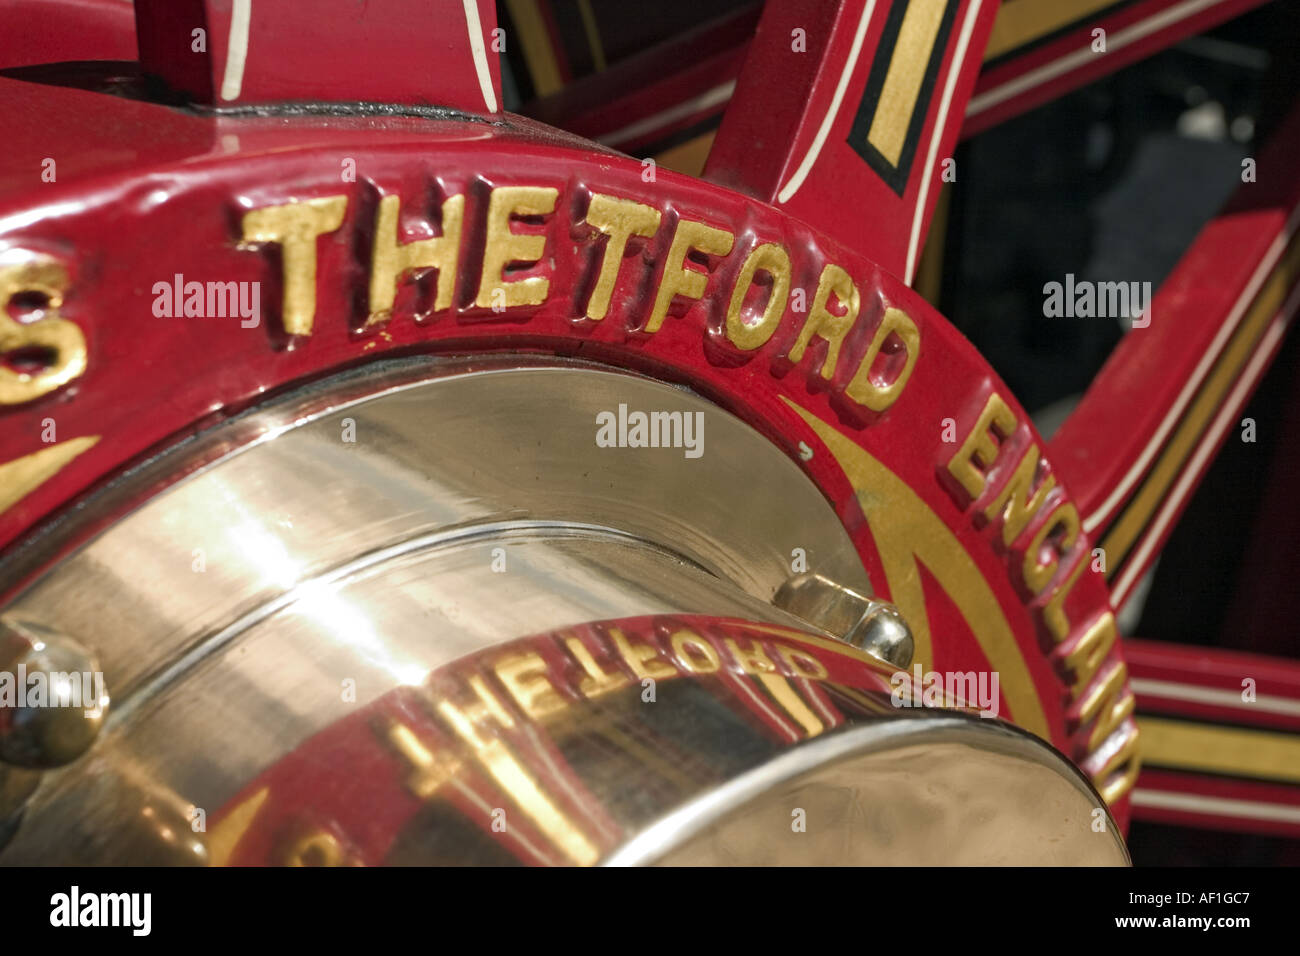 Close up of polished brass wheel bearing on vintage steam traction engine circa 1930 showing Thetford England markings - Stock Image